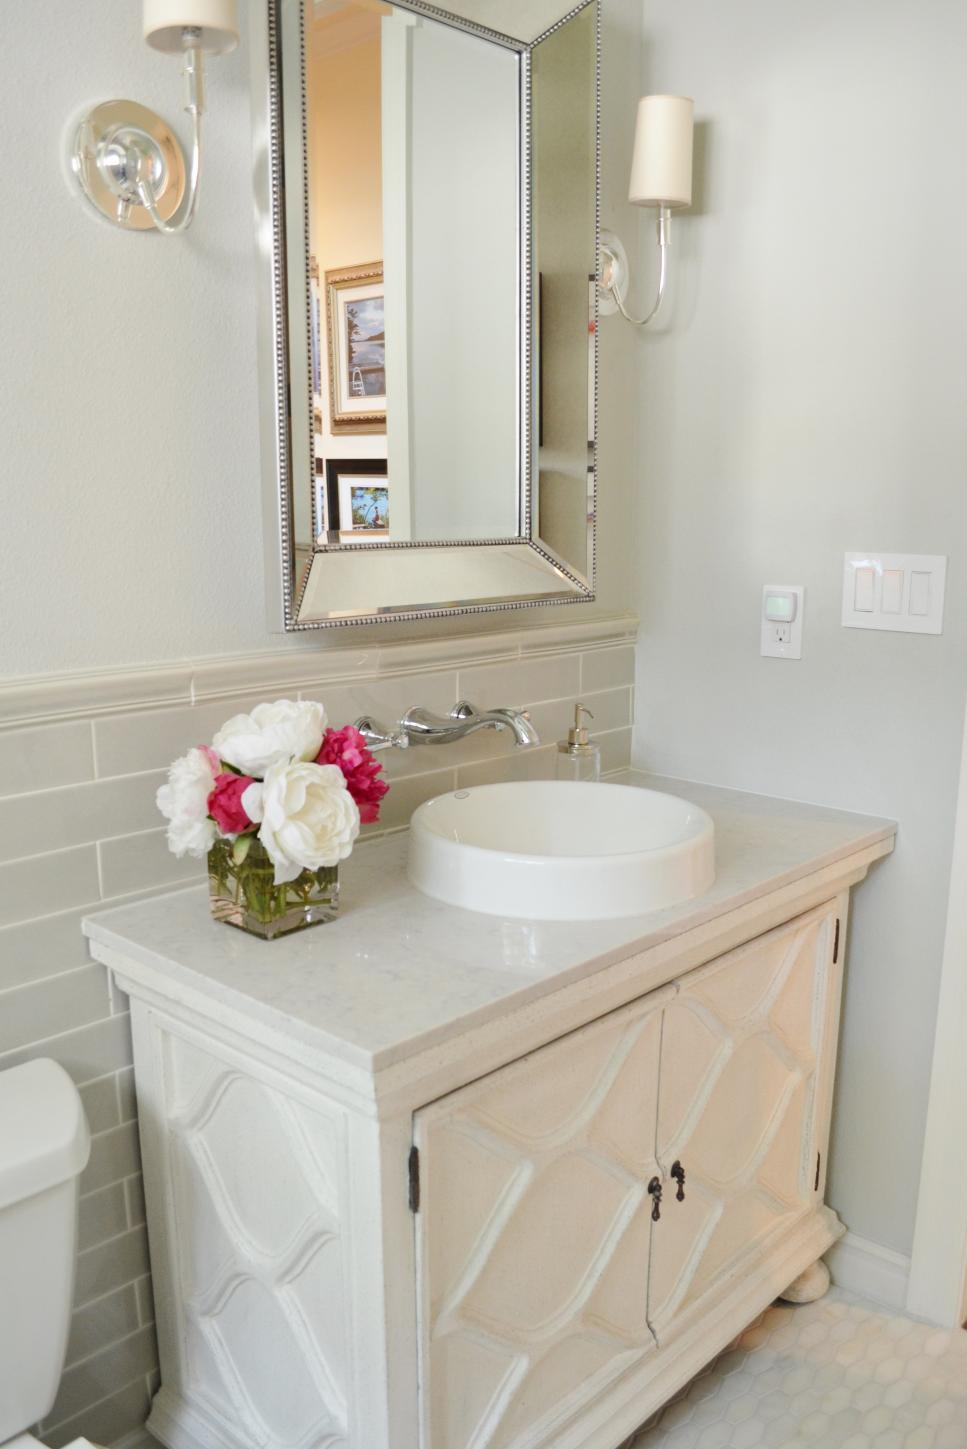 Bathroom Remodeling On A Budget before-and-after bathroom remodels on a budget | hgtv